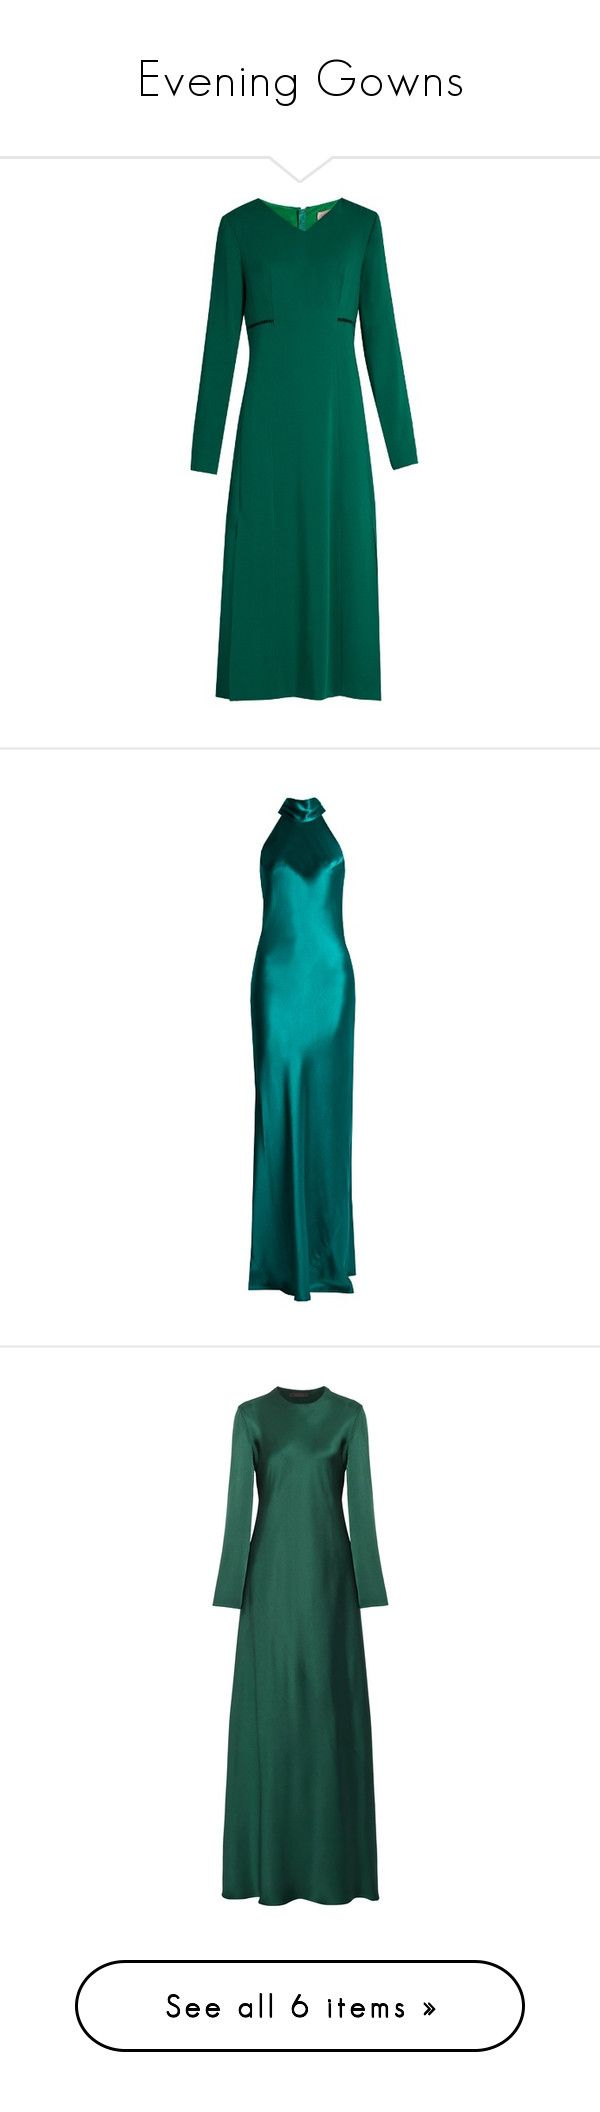 """""""Evening Gowns"""" by empath-eye ❤ liked on Polyvore featuring dresses, gowns, green, long sleeve dress, green dress, long sleeve midi dress, green long sleeve dress, green evening dress, green gown and the row dress"""